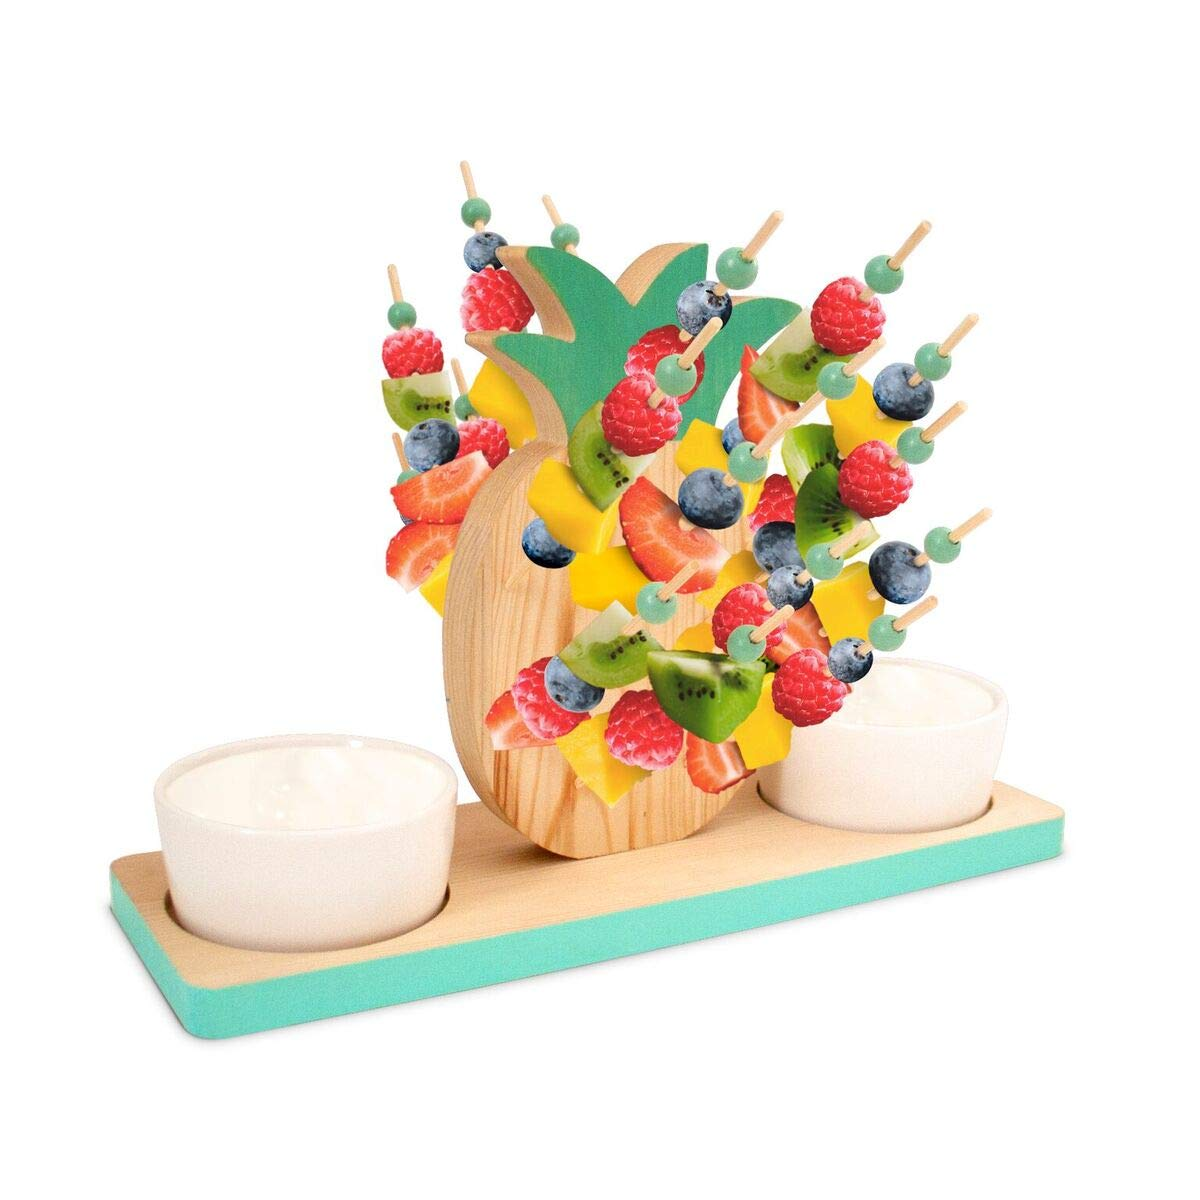 23 Bees | Pineapple Party Fruit Skewers | Wood Pineapples Theme Decorations | Includes Appetizer Picks & Cocktail Bowl Set | For Weddings, Catering, Parties, Birthdays (2 Bowls, 25 Pick Set)